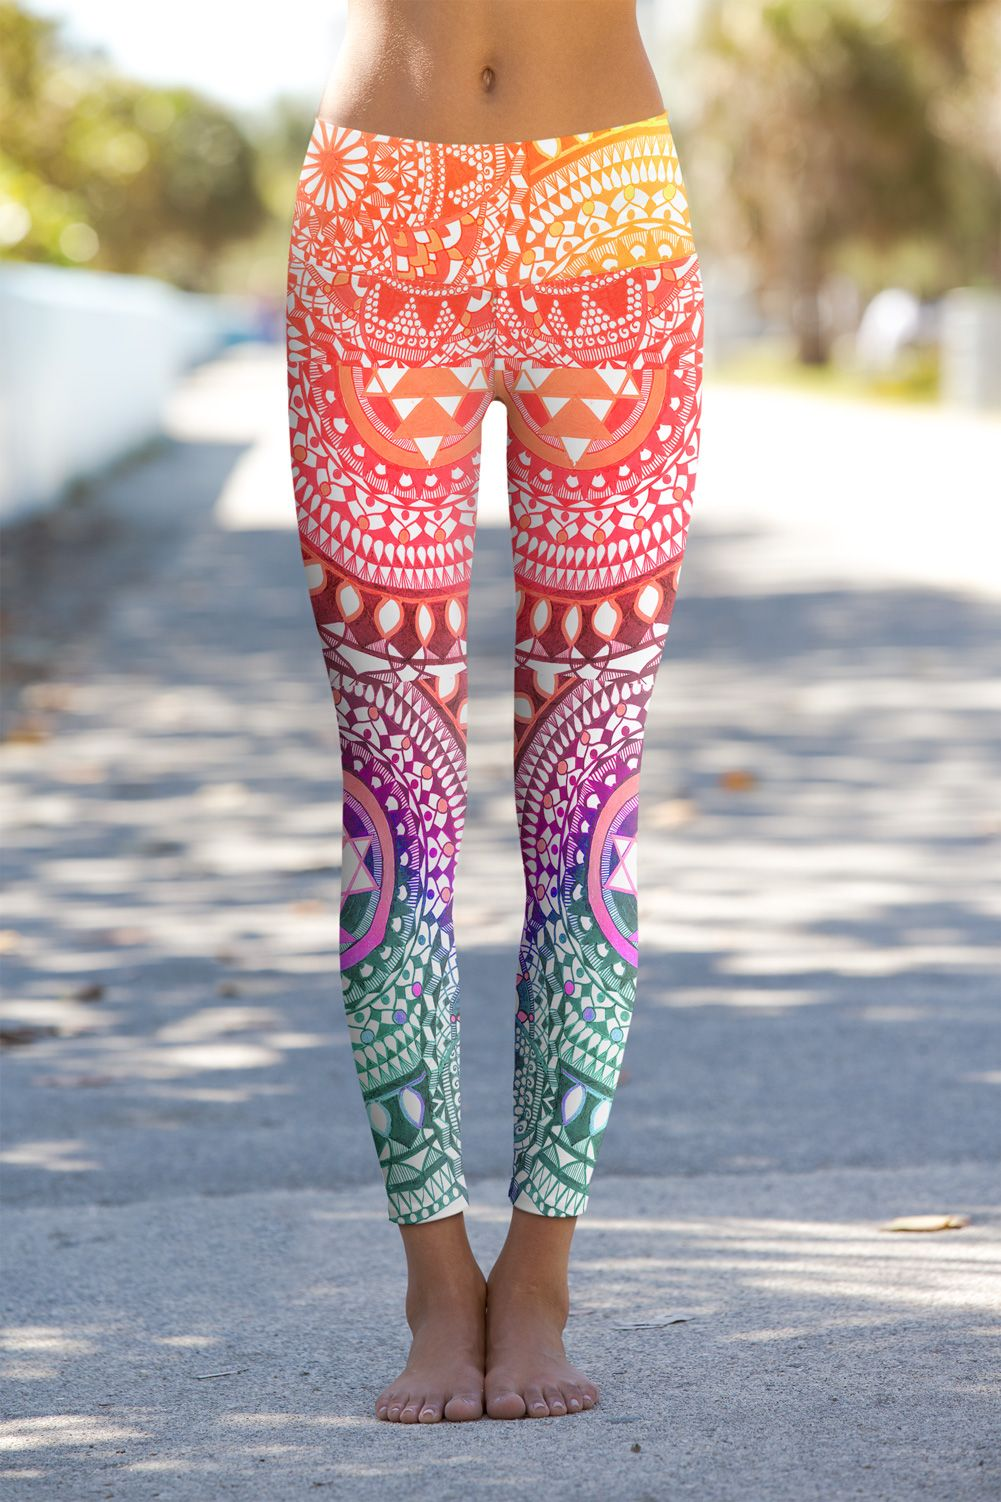 737a8703a06fb Chakra Diamonds yoga leggings with a vibrant pattern and colors to infuse  your spirit with vibrant, positive energy. Positive vibes made into a  fabulous ...